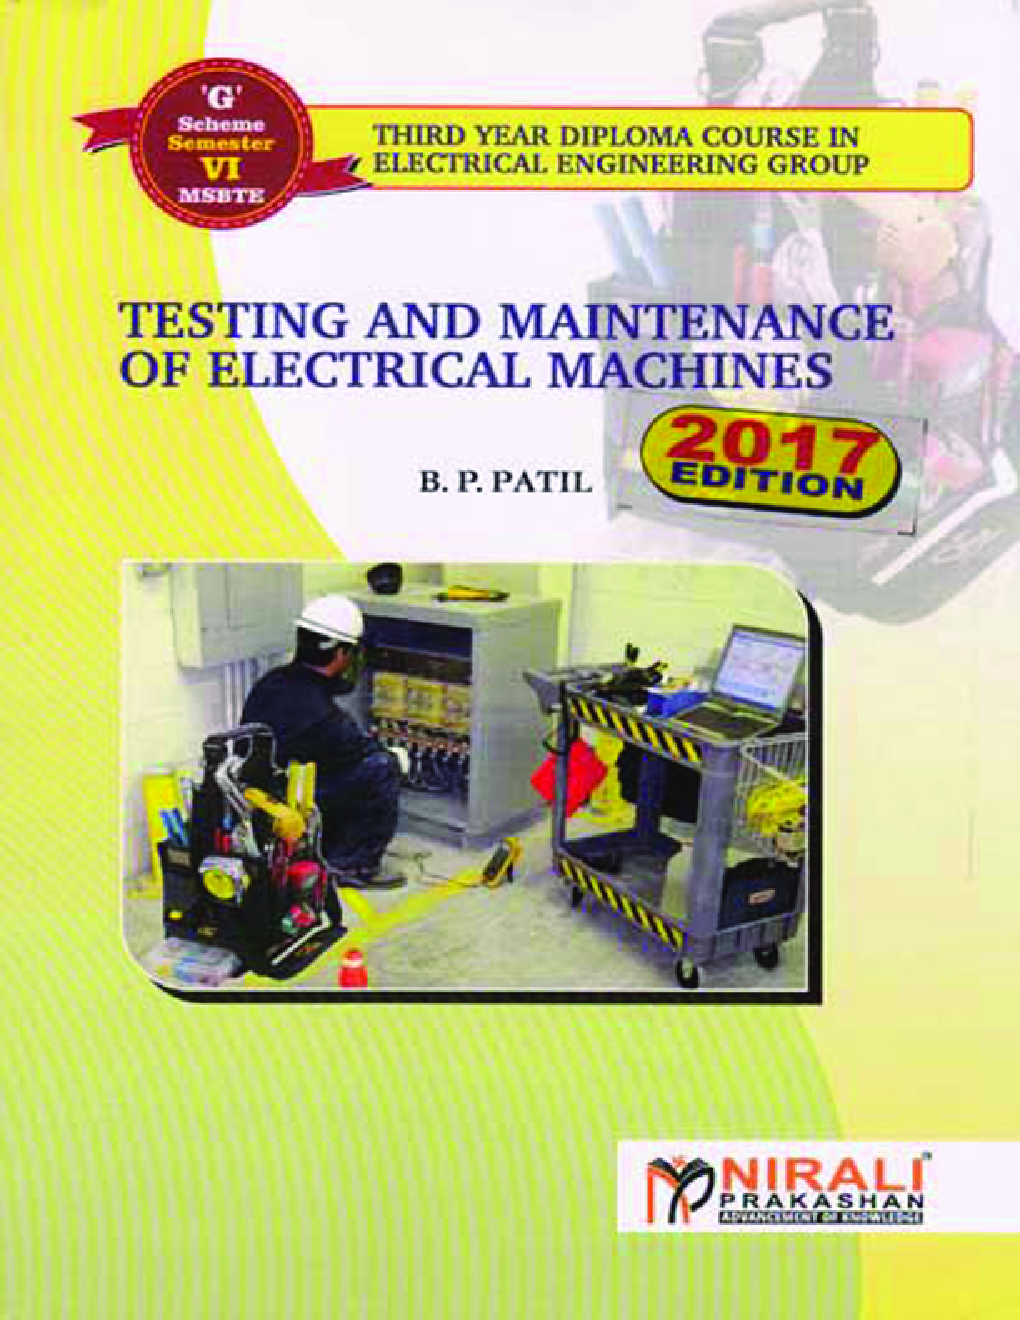 Testing And Maintenance Of Electrical Machines - Page 1